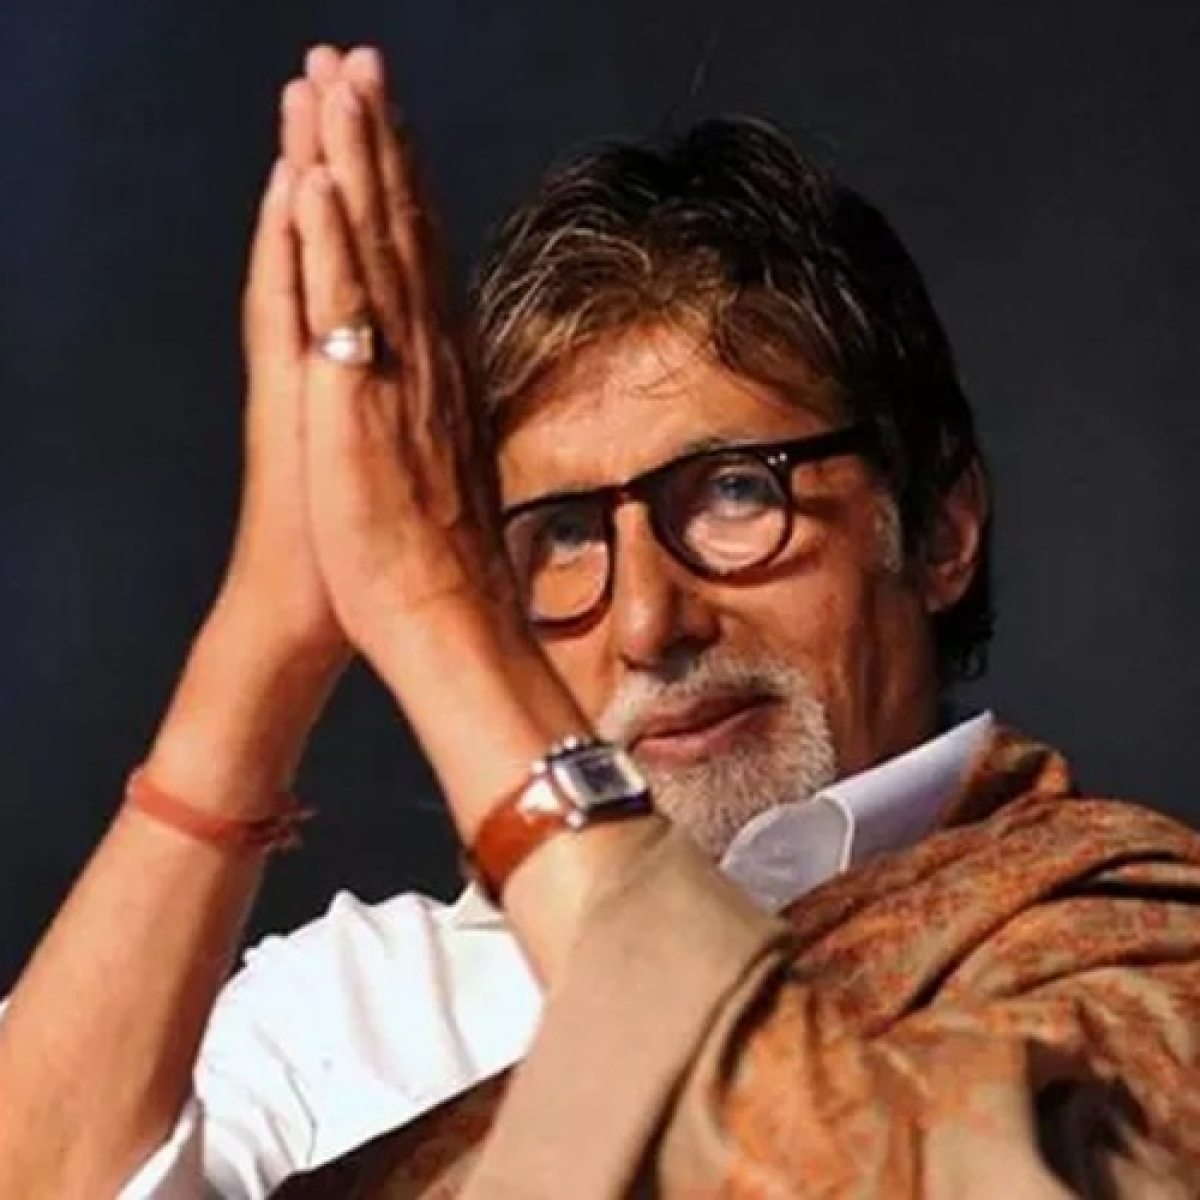 Take pride in recognition of my profession: Amitabh Bachchan on Dadasaheb Phalke Award